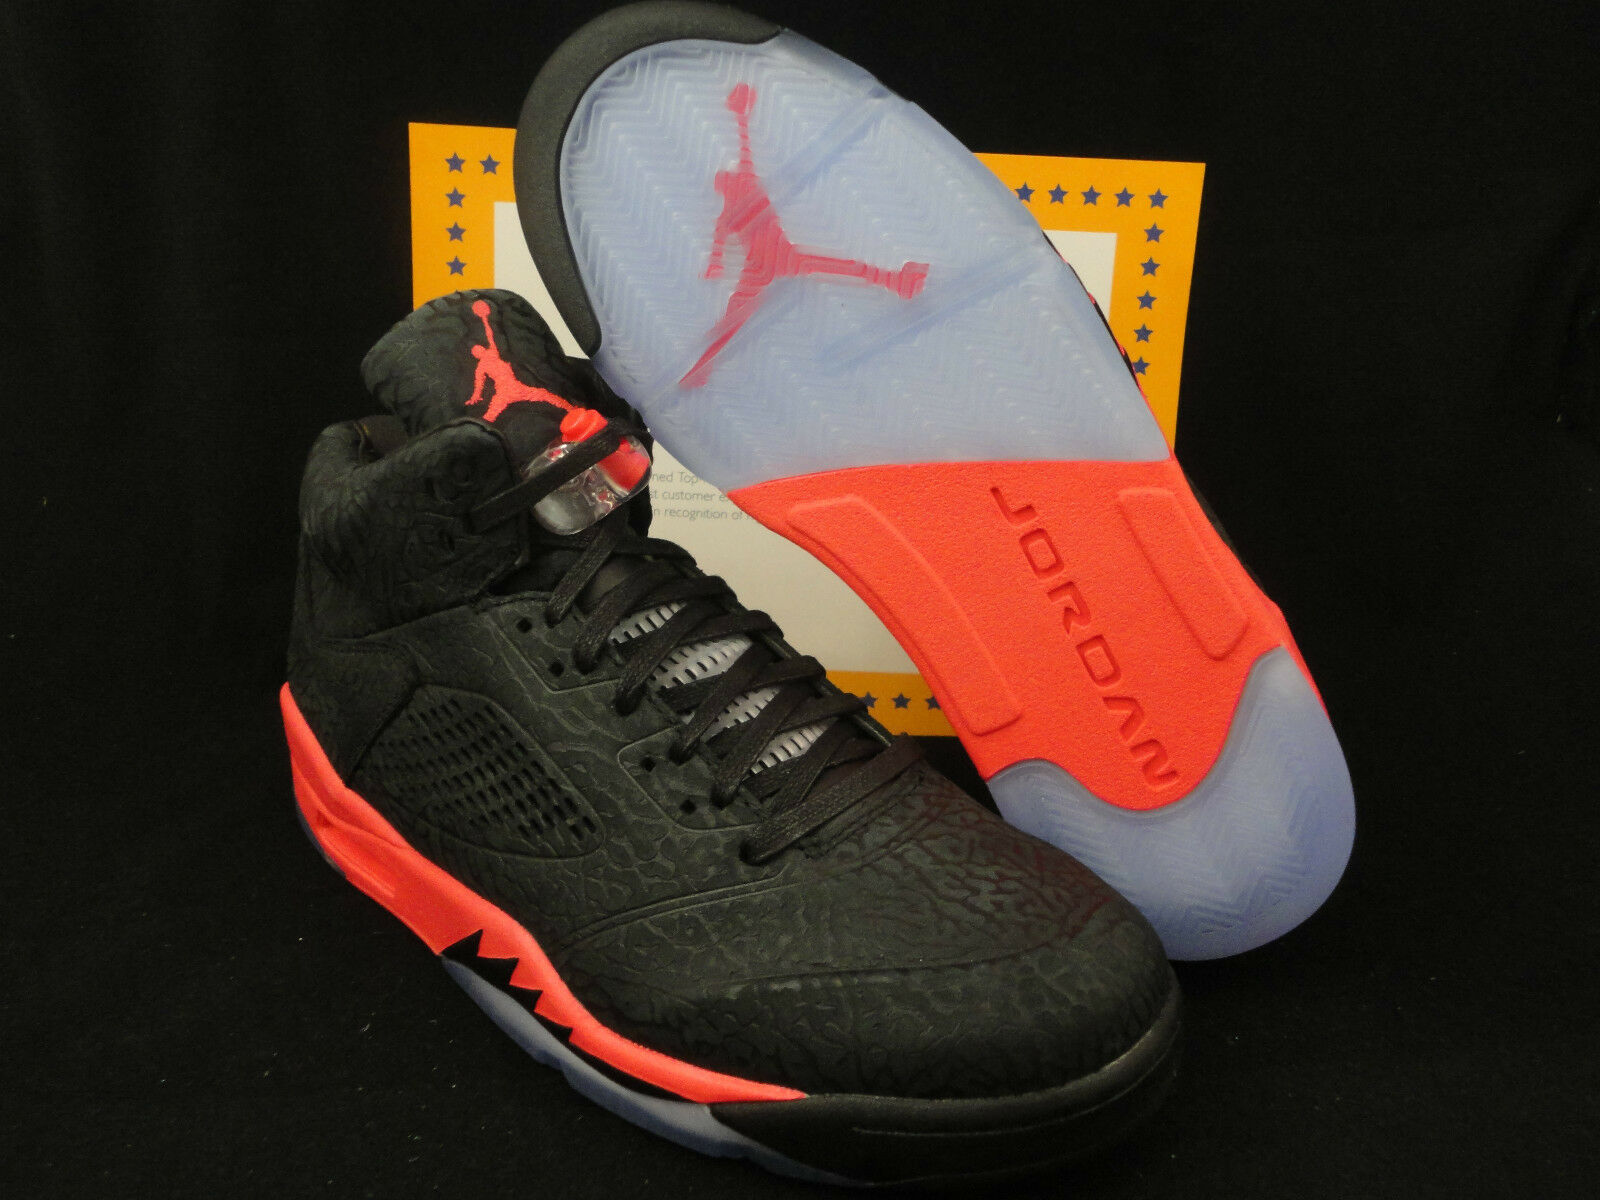 Nike Air Jordan 3LAB5, Jordan 5 V, Size 14, Black Infrared 23